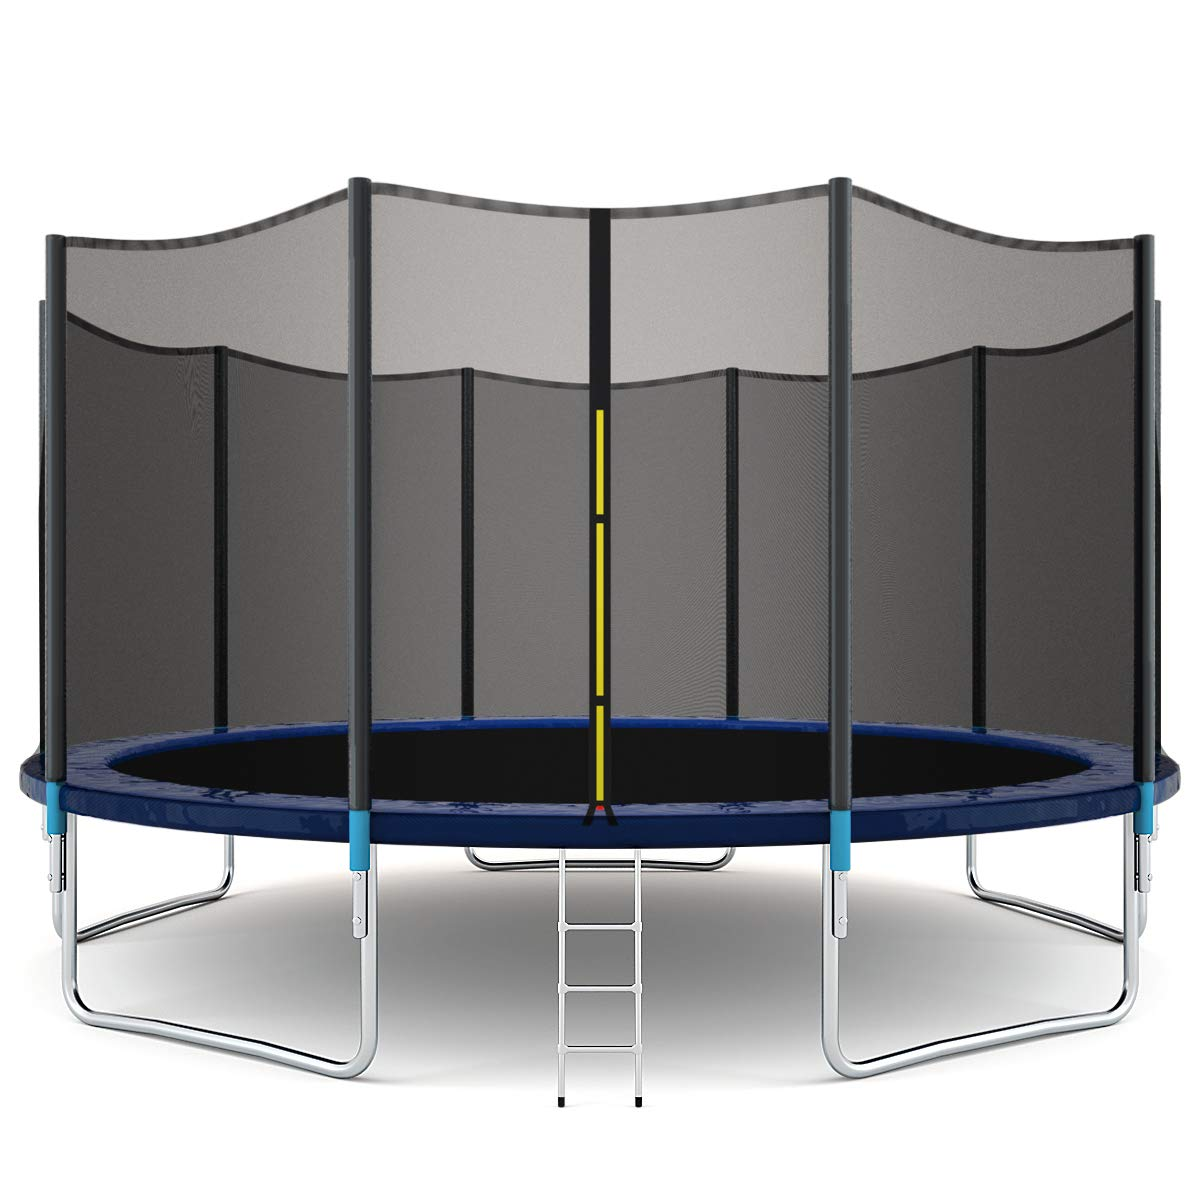 Giantex Trampoline Combo Bounce Jump Safety Enclosure Net W/Spring Pad Ladder, 15 FT by Giantex (Image #1)